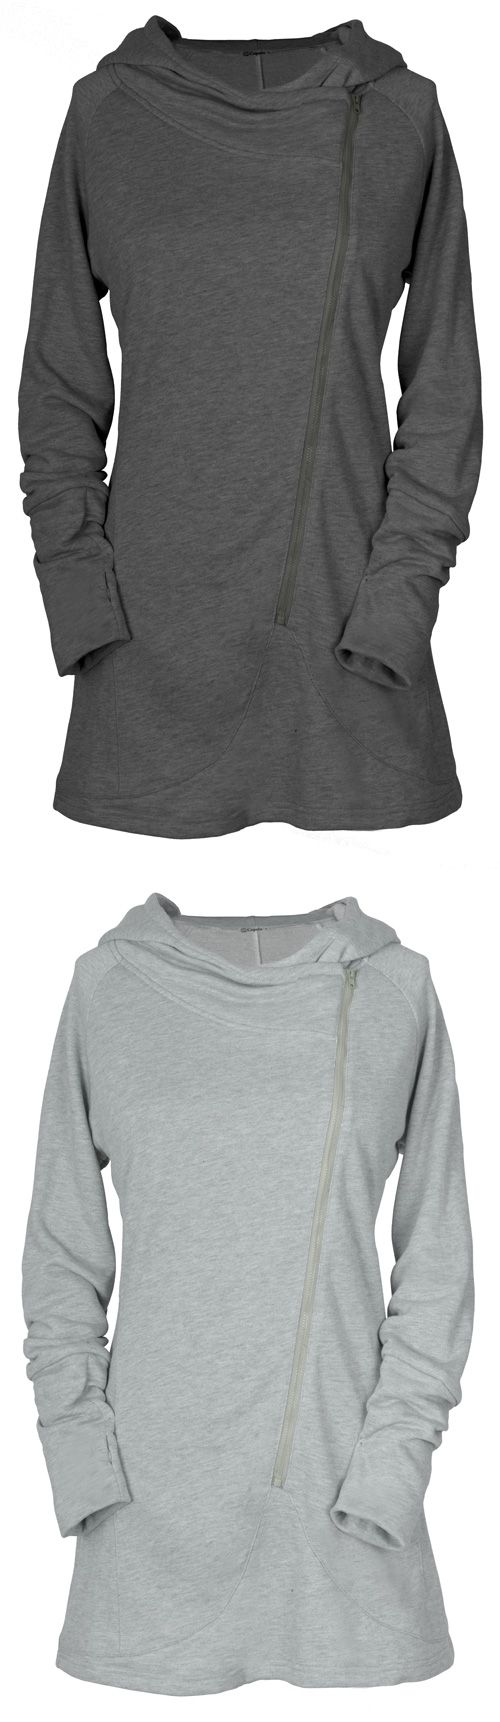 Enjoy this sassy sweatshirt with free shipping&easy return! This zipper closure piece is detailed with hoodie design&long sleeve! Warm&chic at Cupshe.com